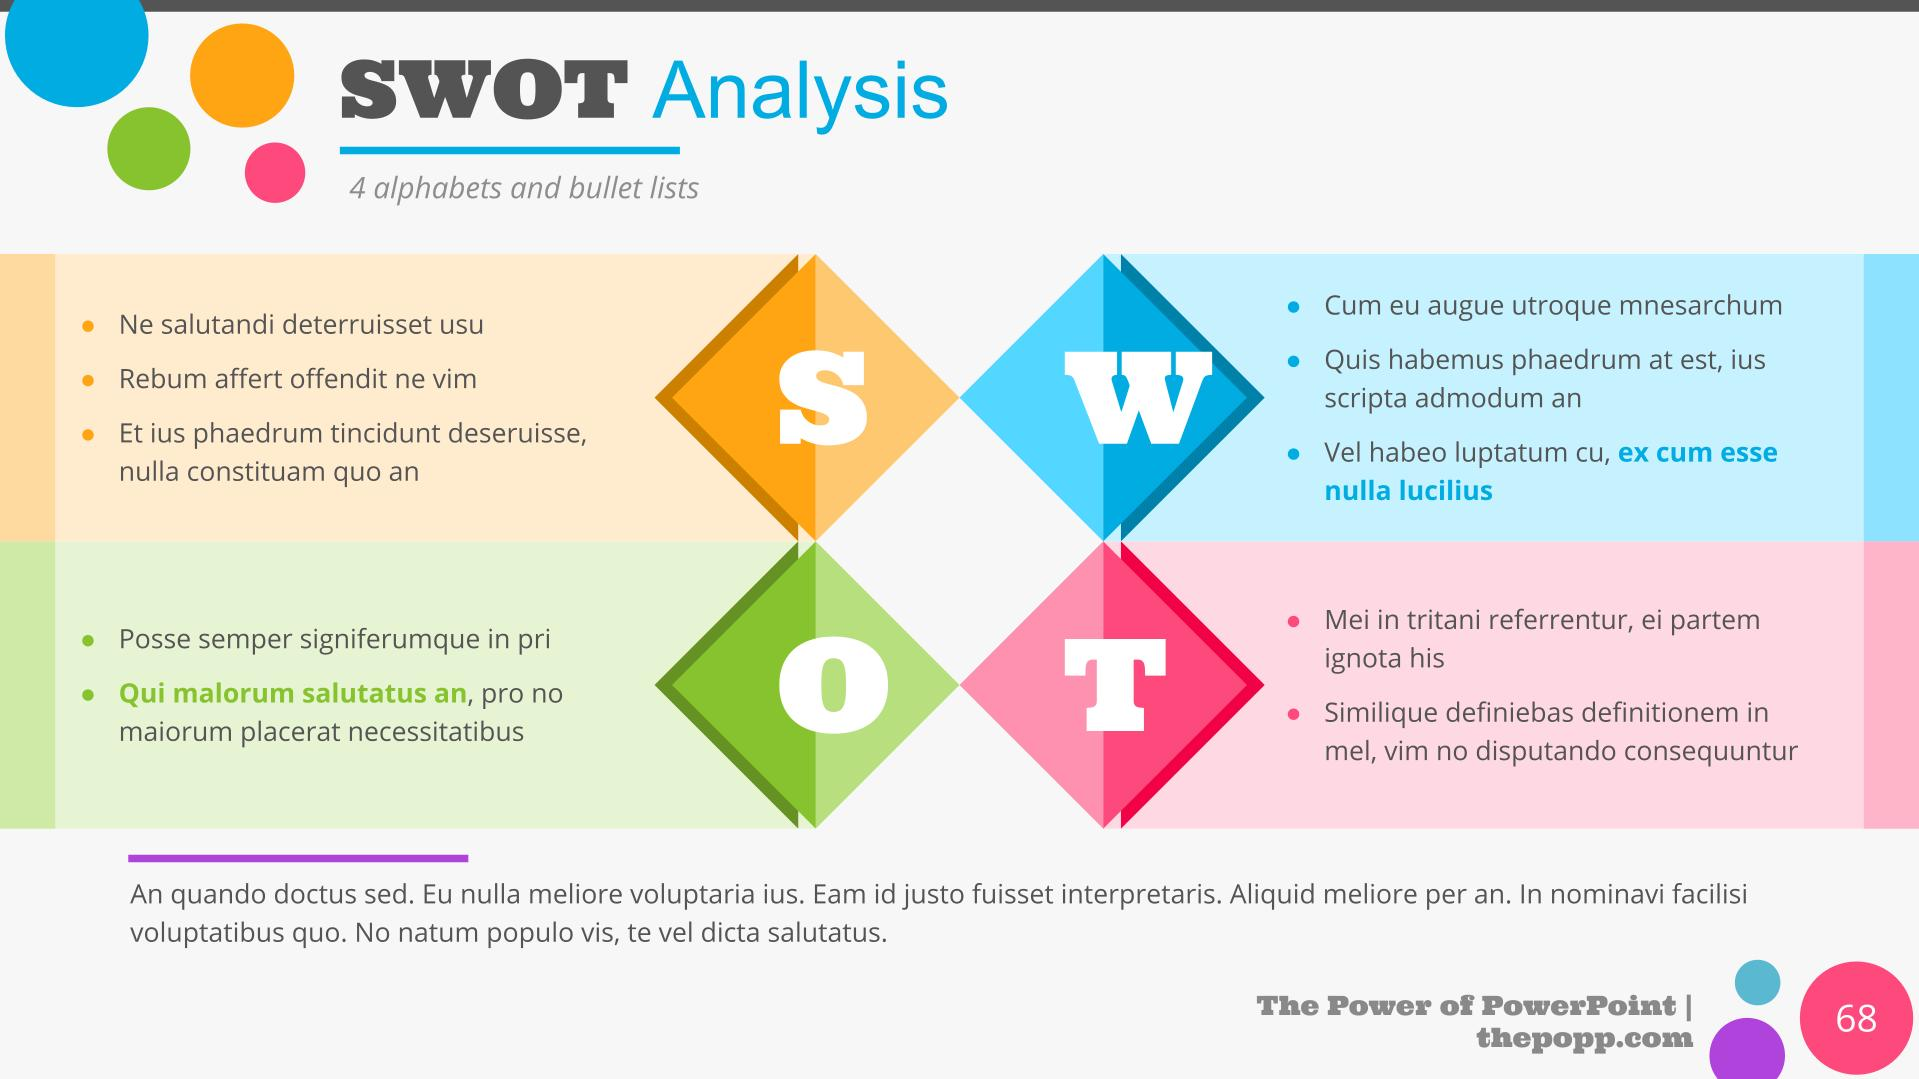 Diagram for SWOT analysis in bright and vivid colors.